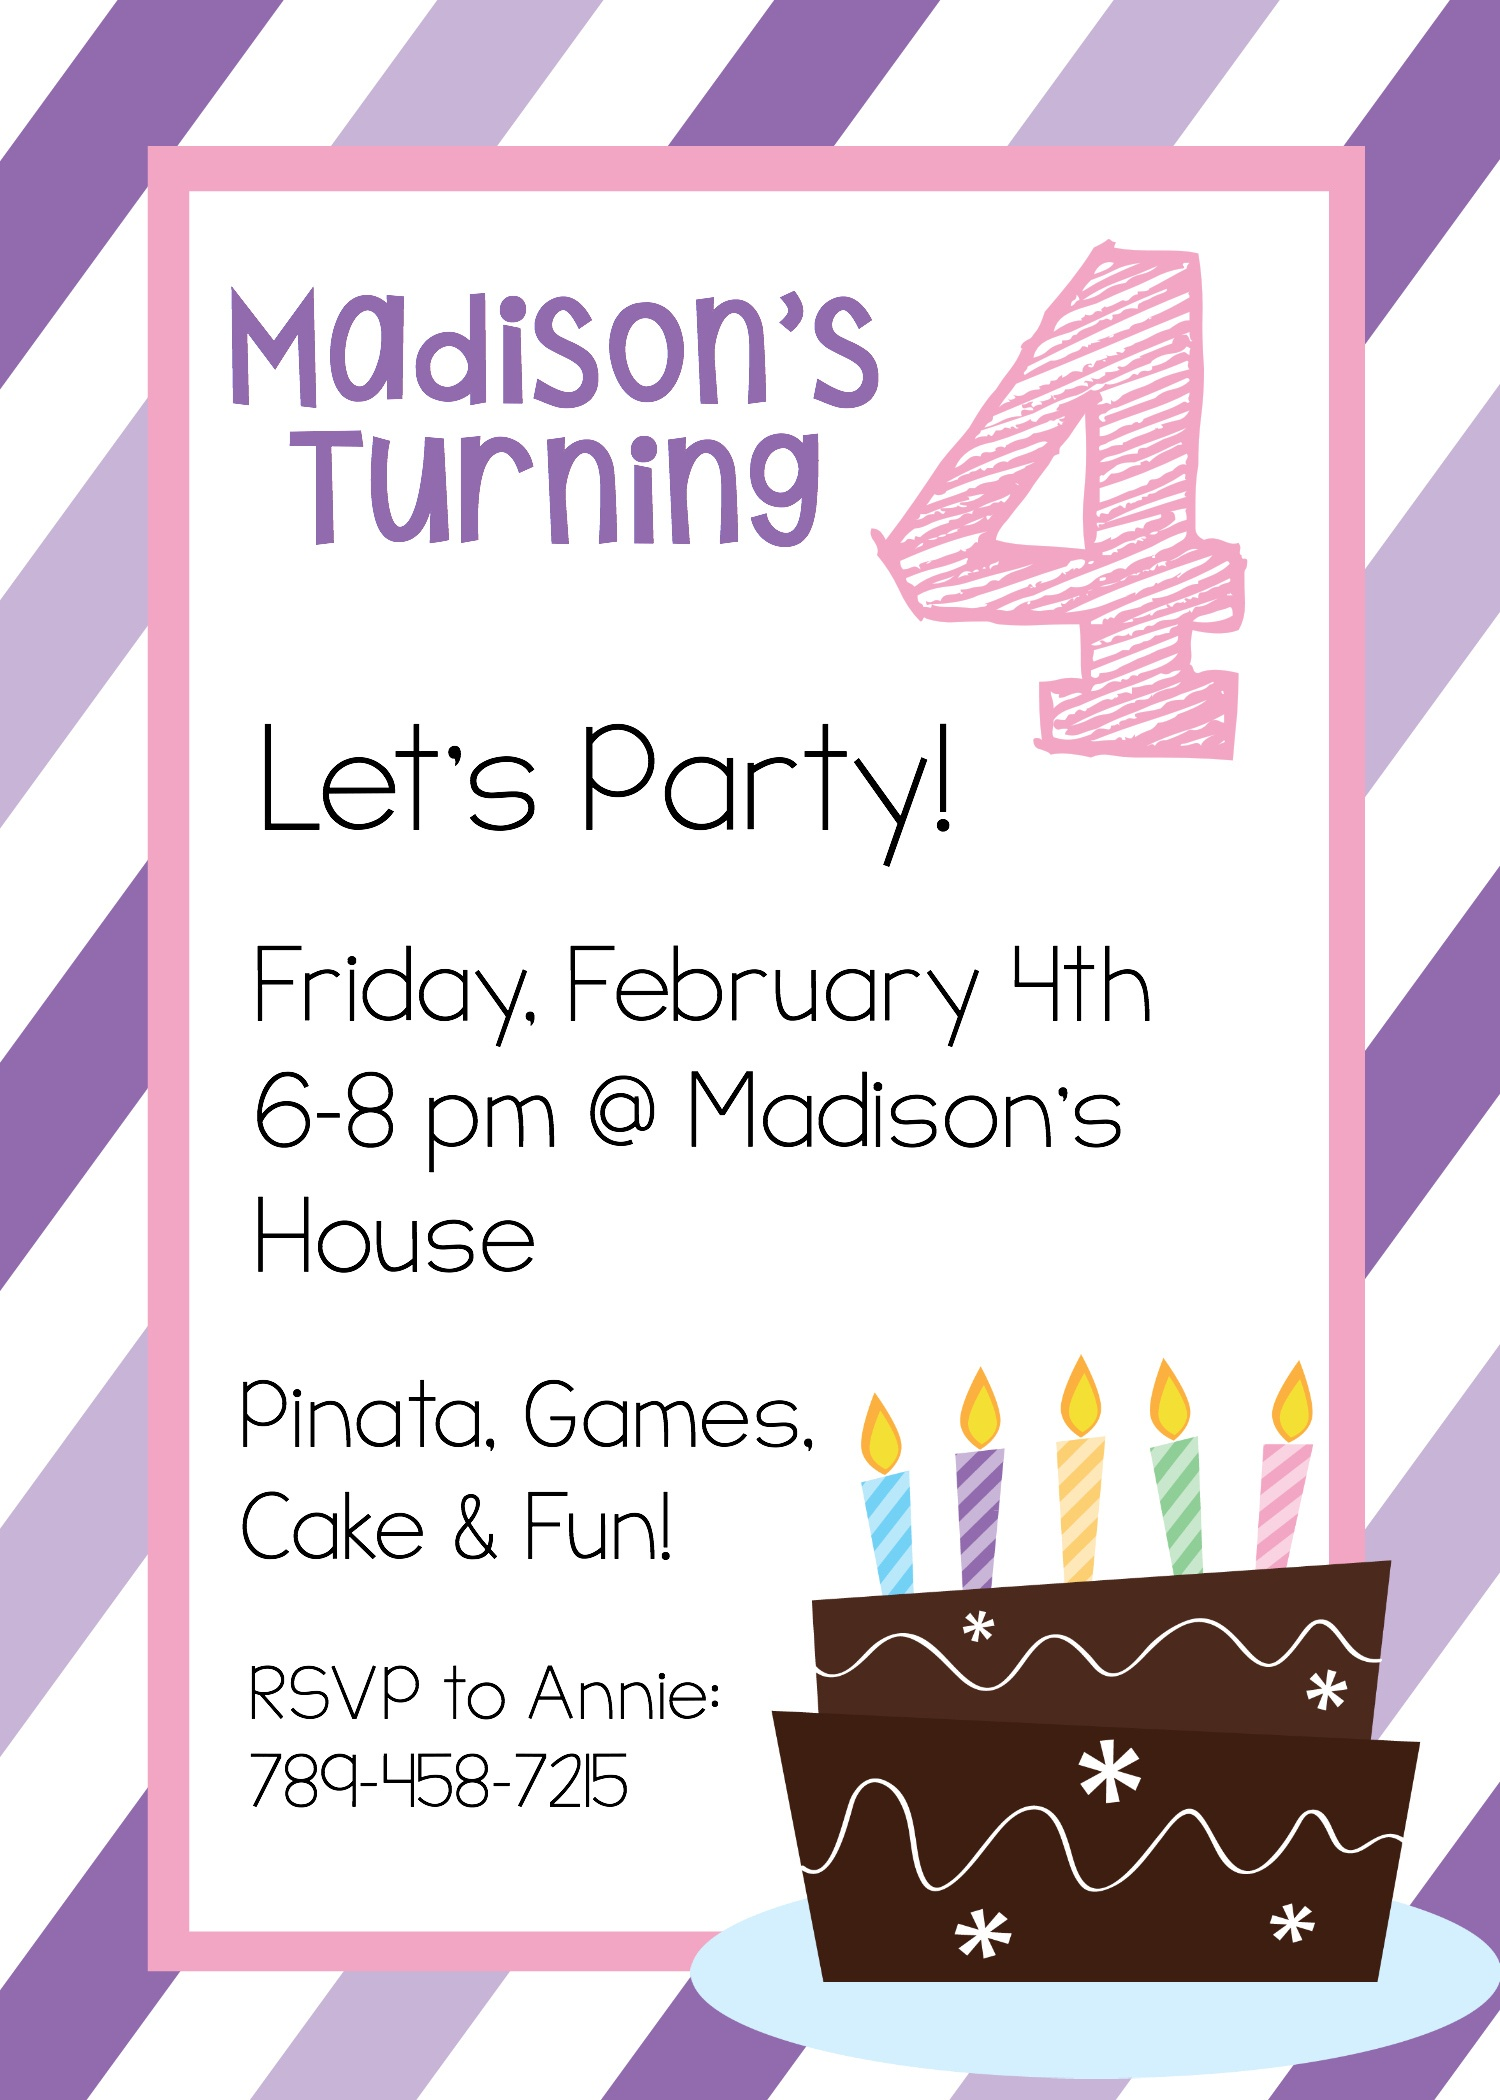 Free Printable Birthday Invitation Templates - Free Printable Invitations Templates